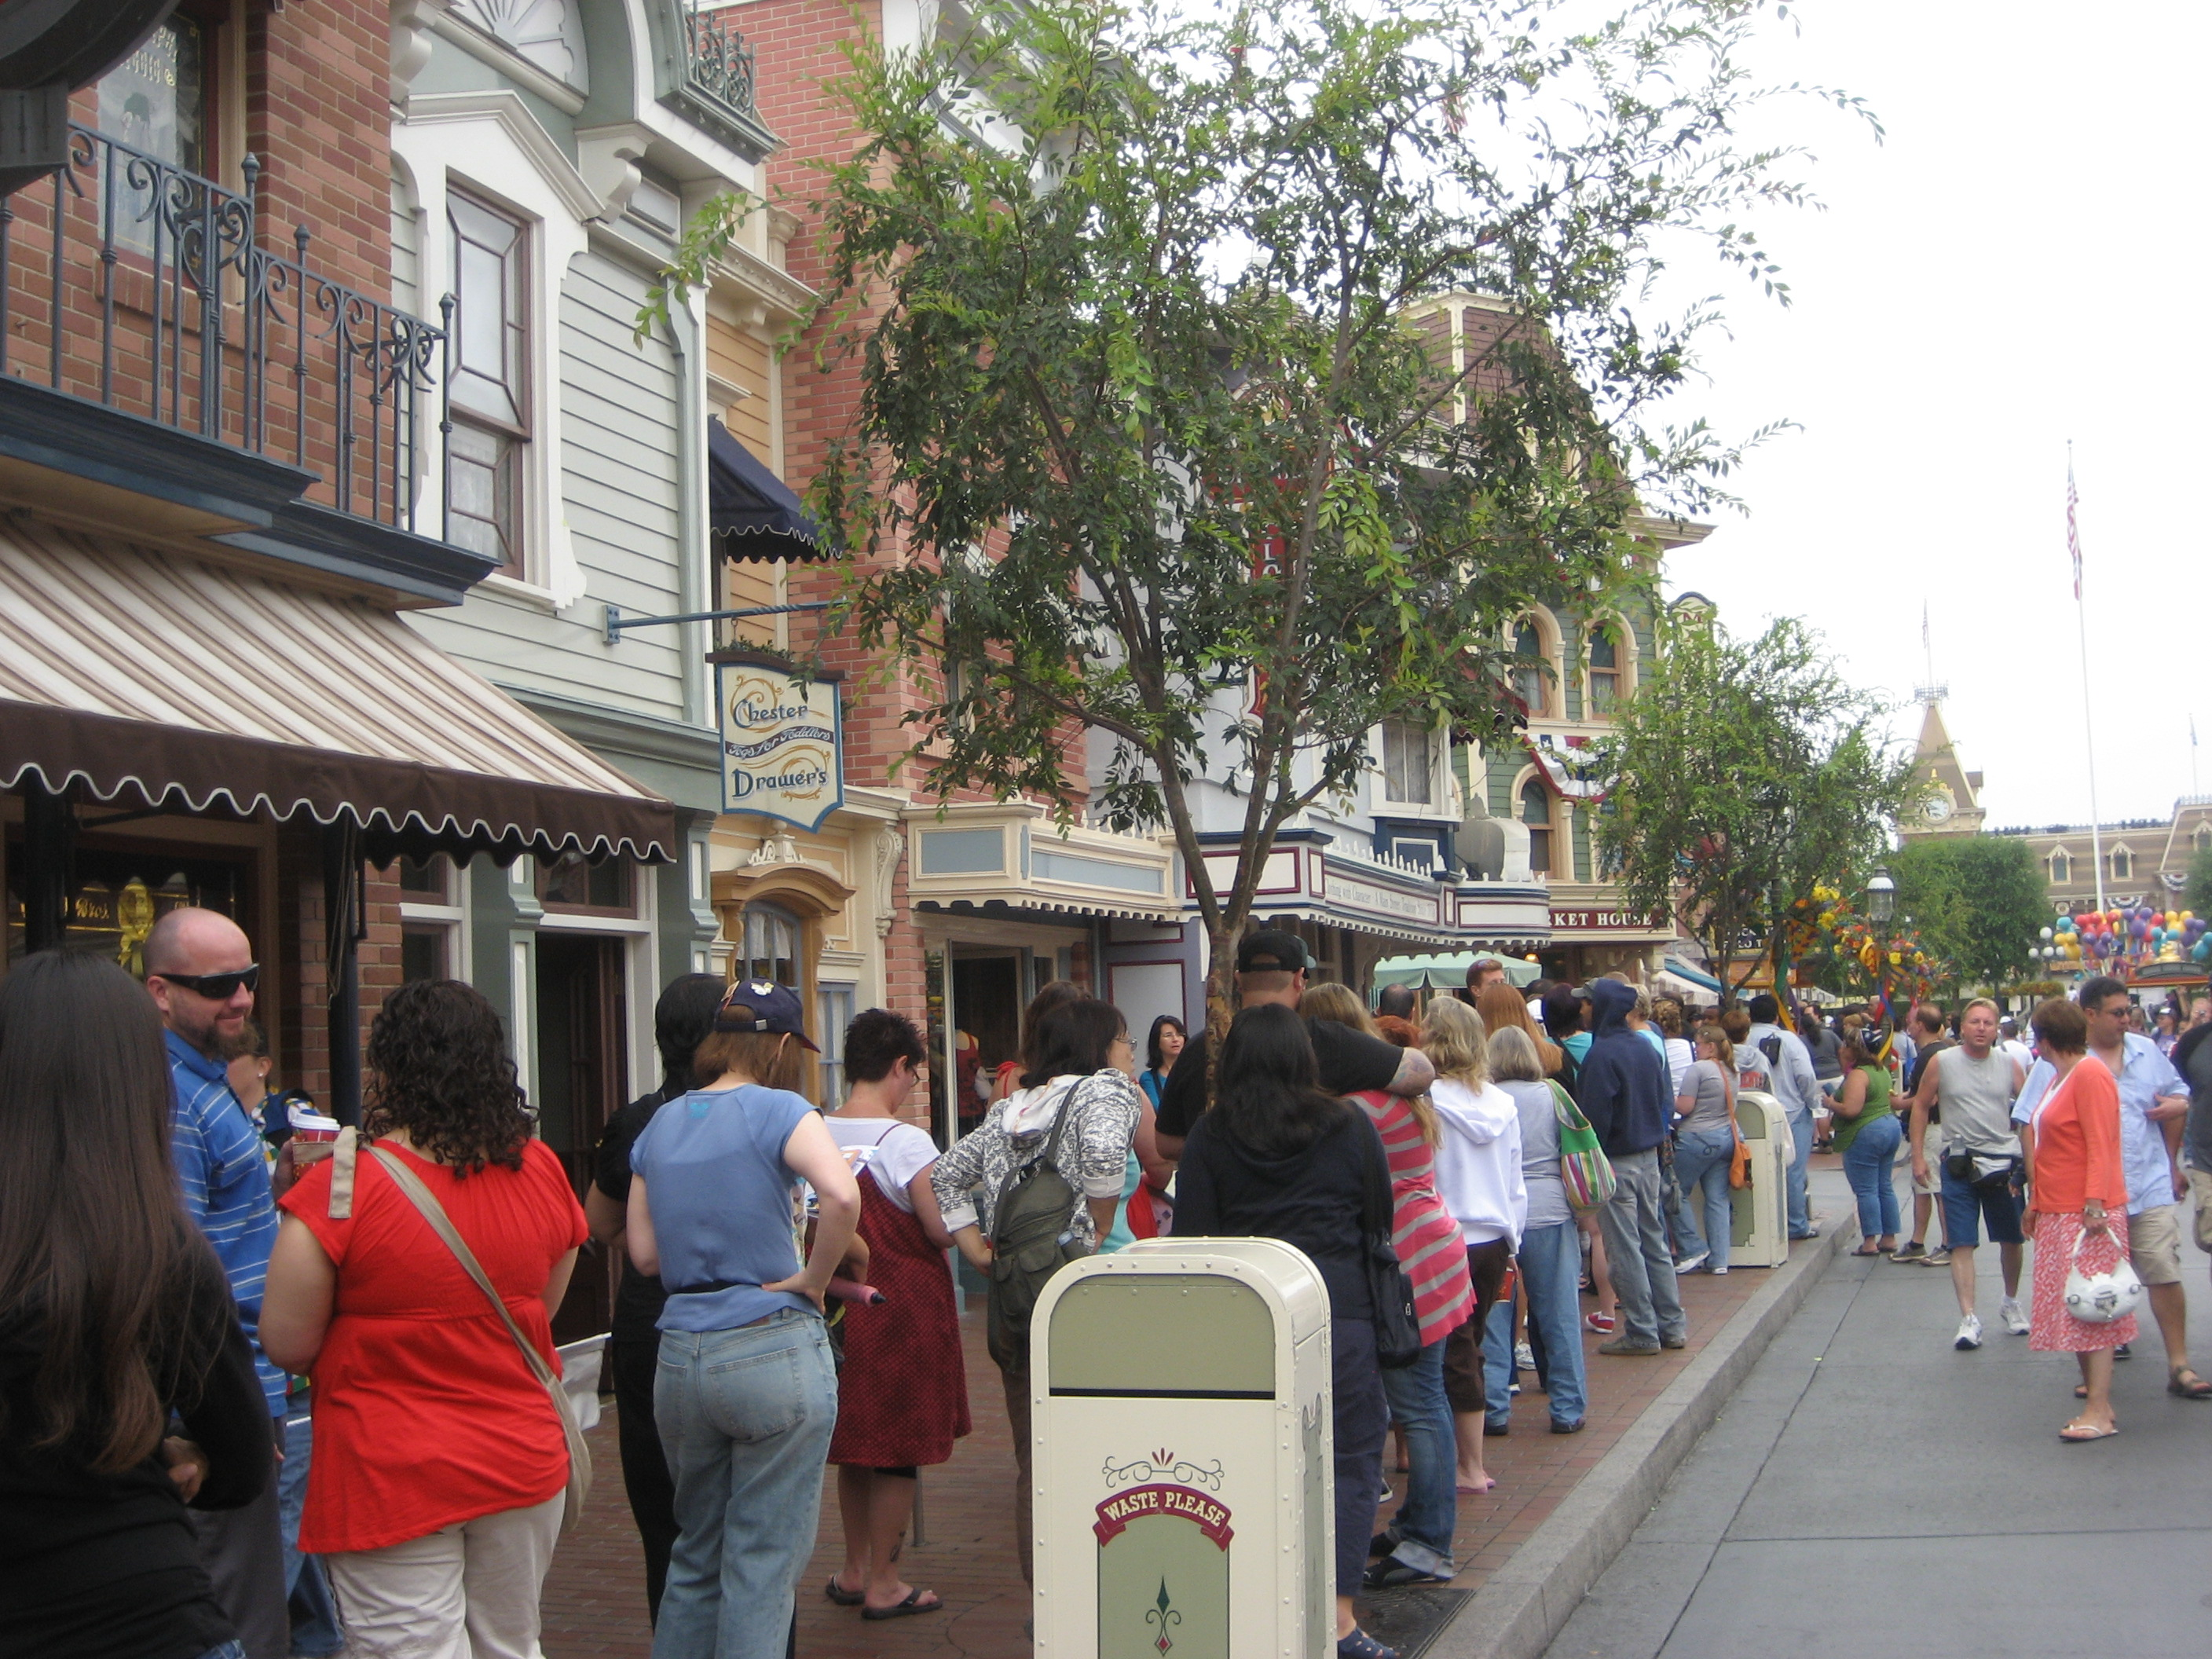 Lining up outside the Disneyana store